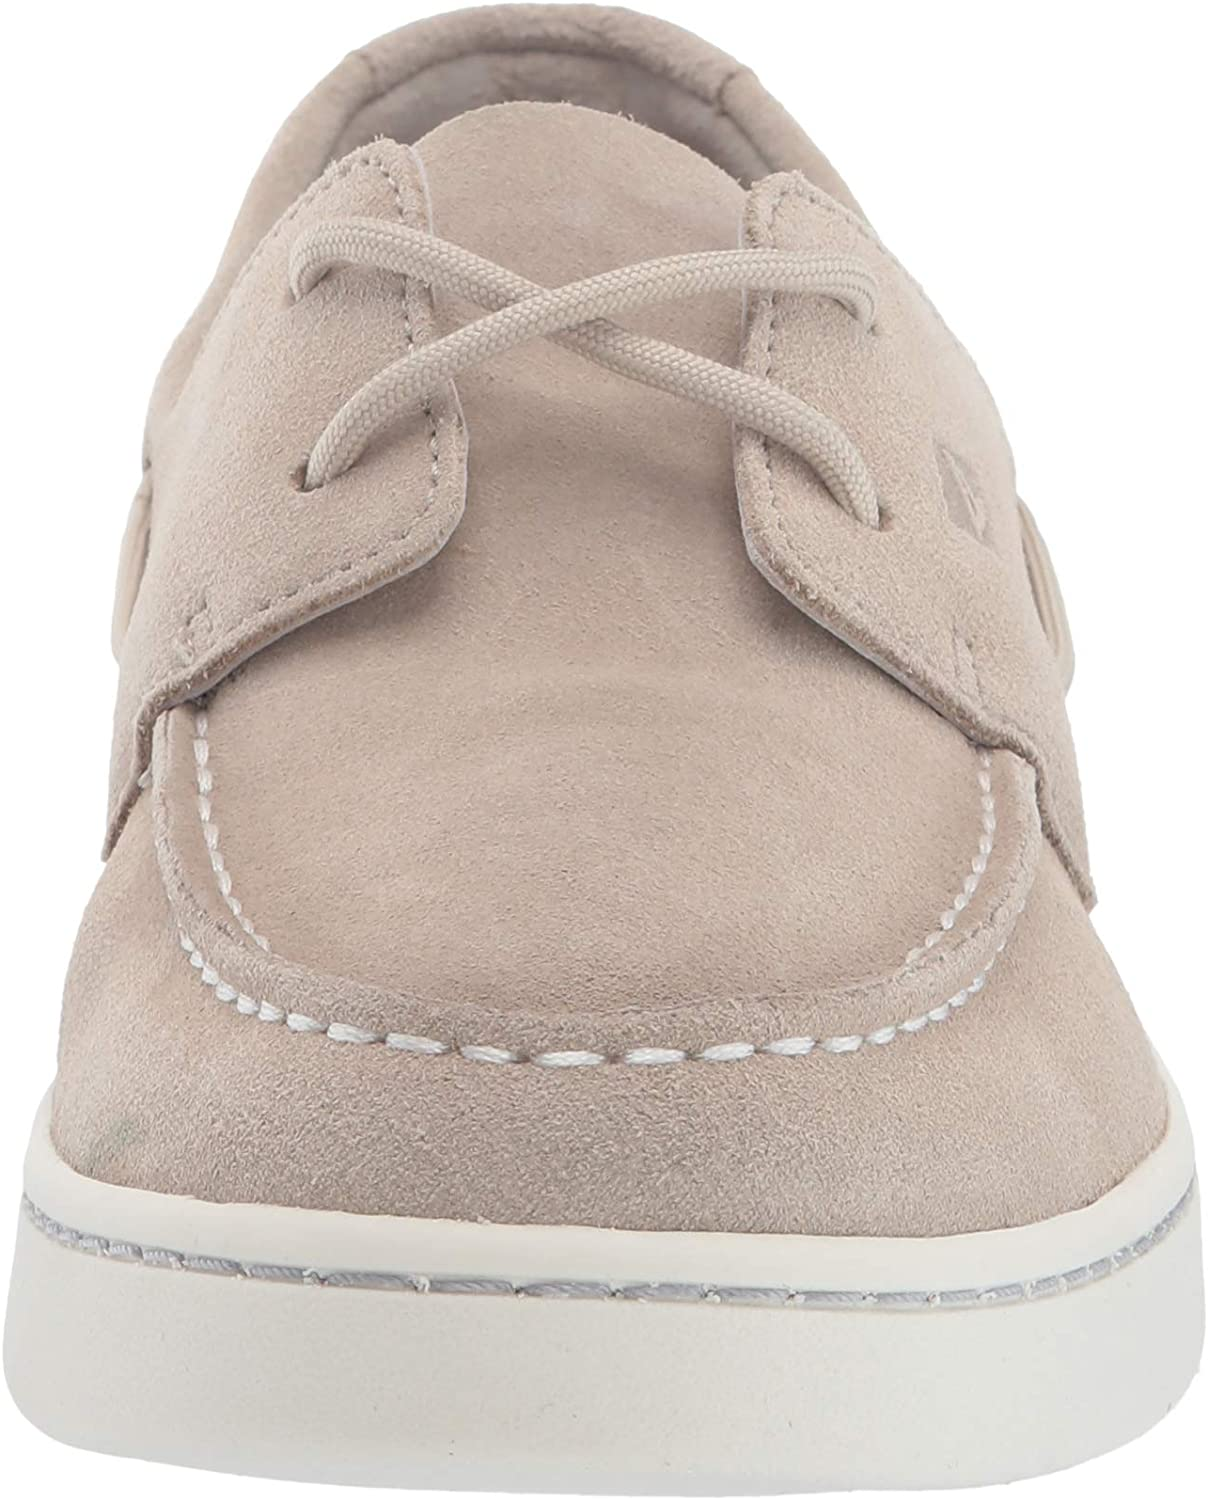 Sperry Mens Cup 2-Eye Leather Boat Shoe